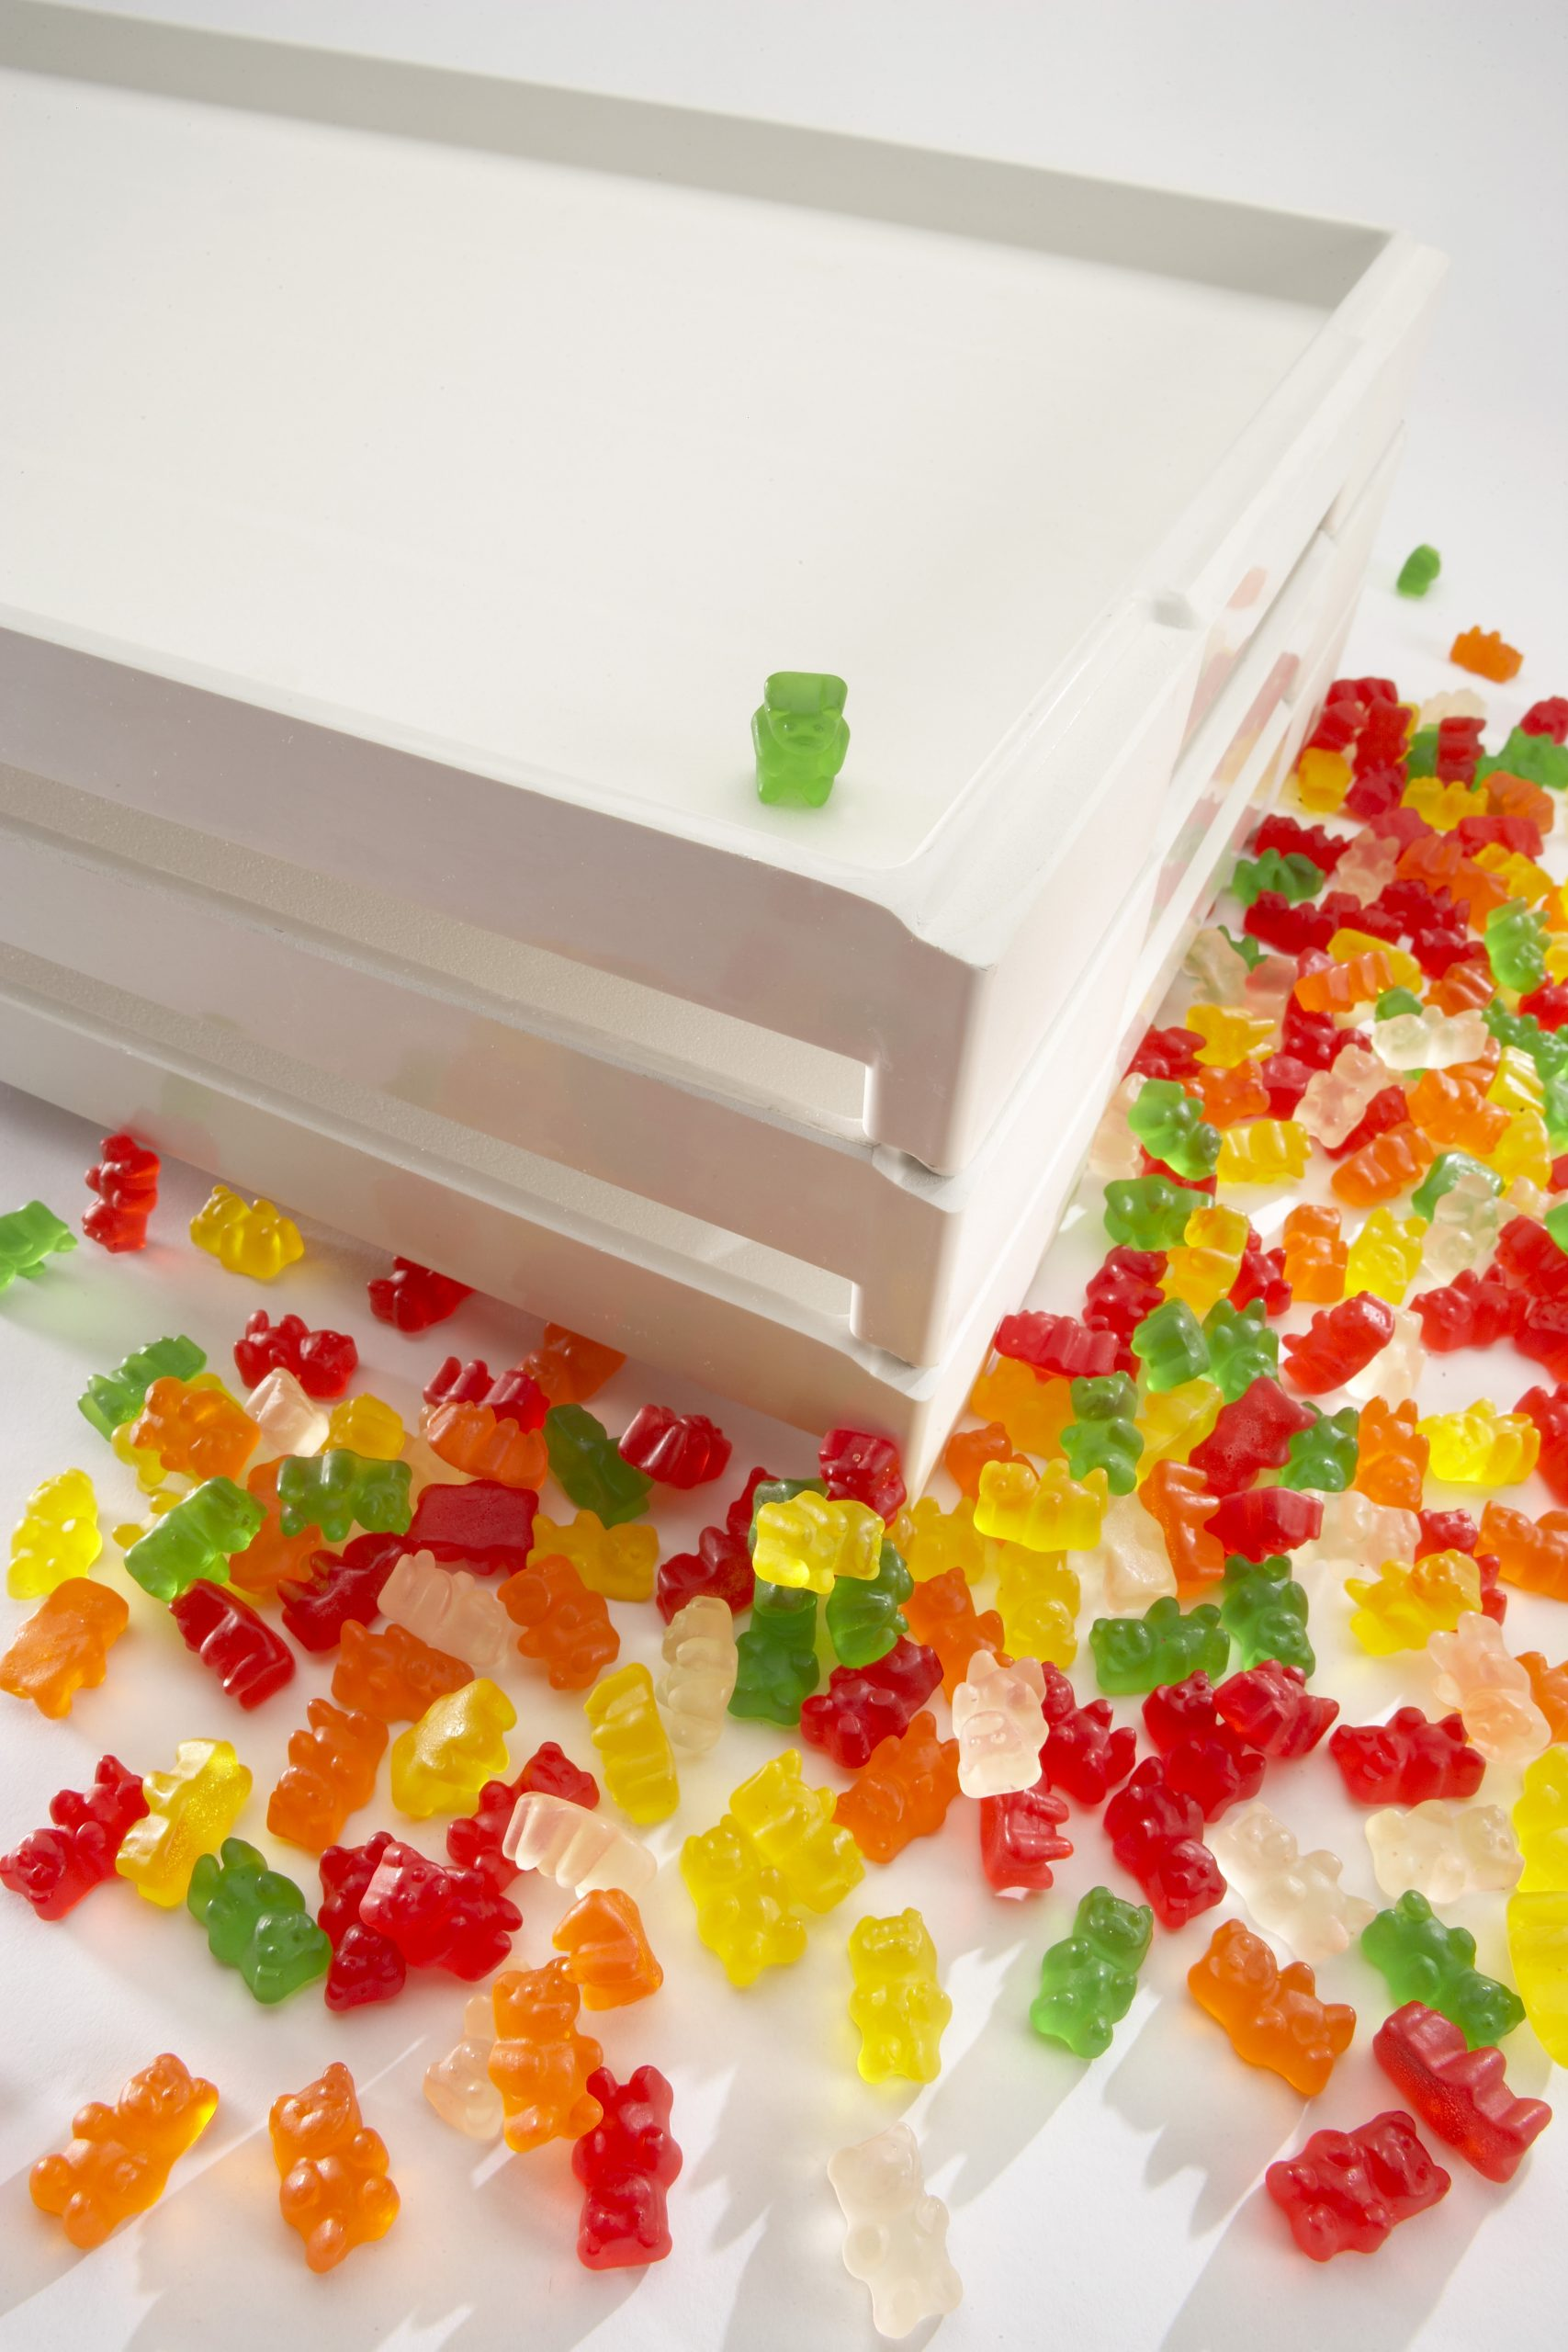 Overcoming confectionery challenges